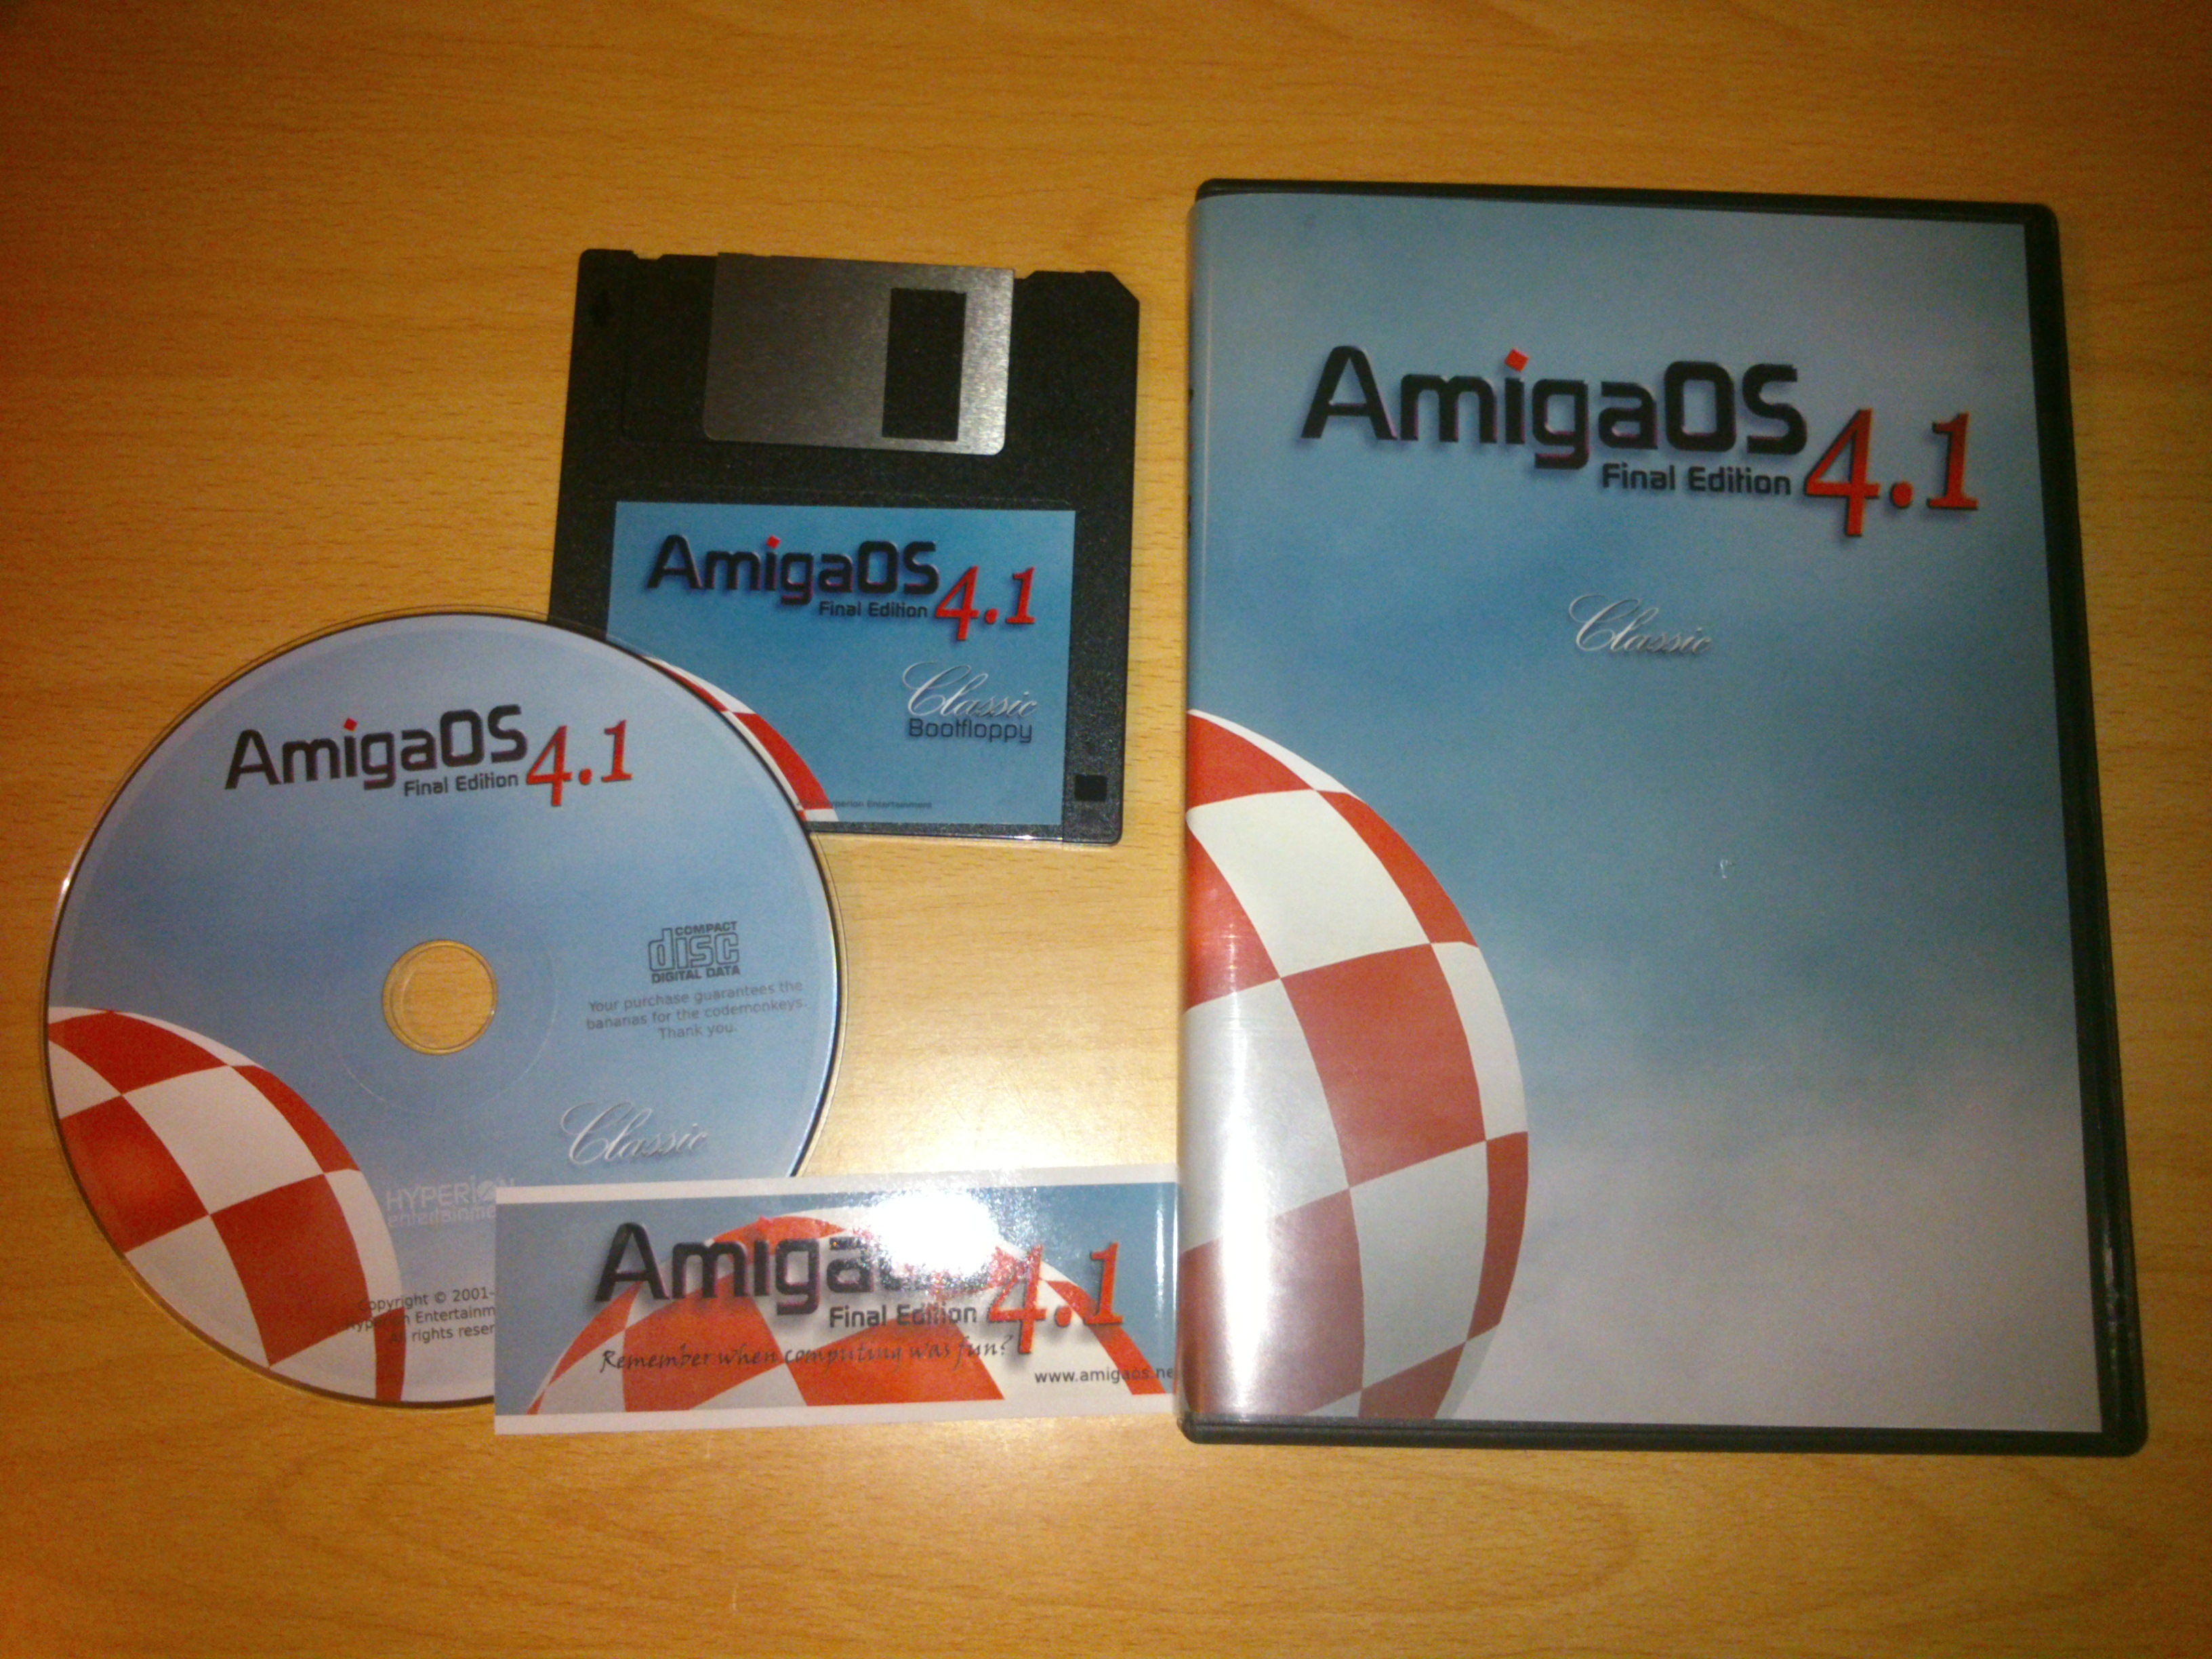 Playing with Amigaos 4 1 Final Edition